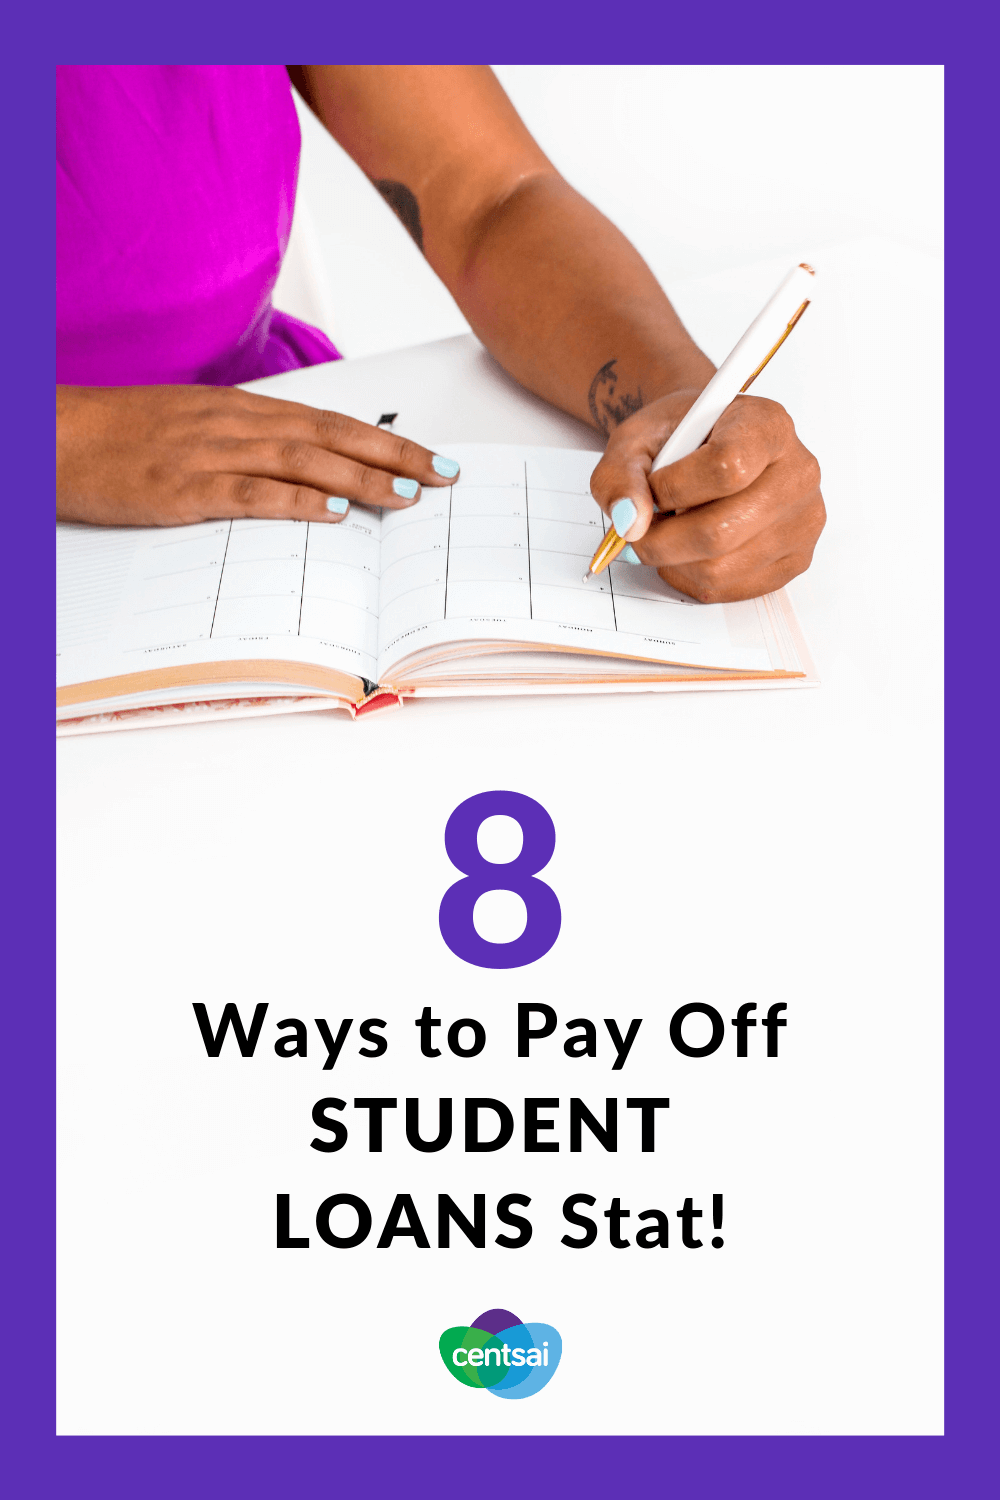 8 Ways to Pay Off Student Loans Stat! Does your student loan debt feel like a ball and chain dragging you down? Check out ways to pay off student loans and get rid of that weight. #studentloandebt #studentloans #studentloanspayingoff